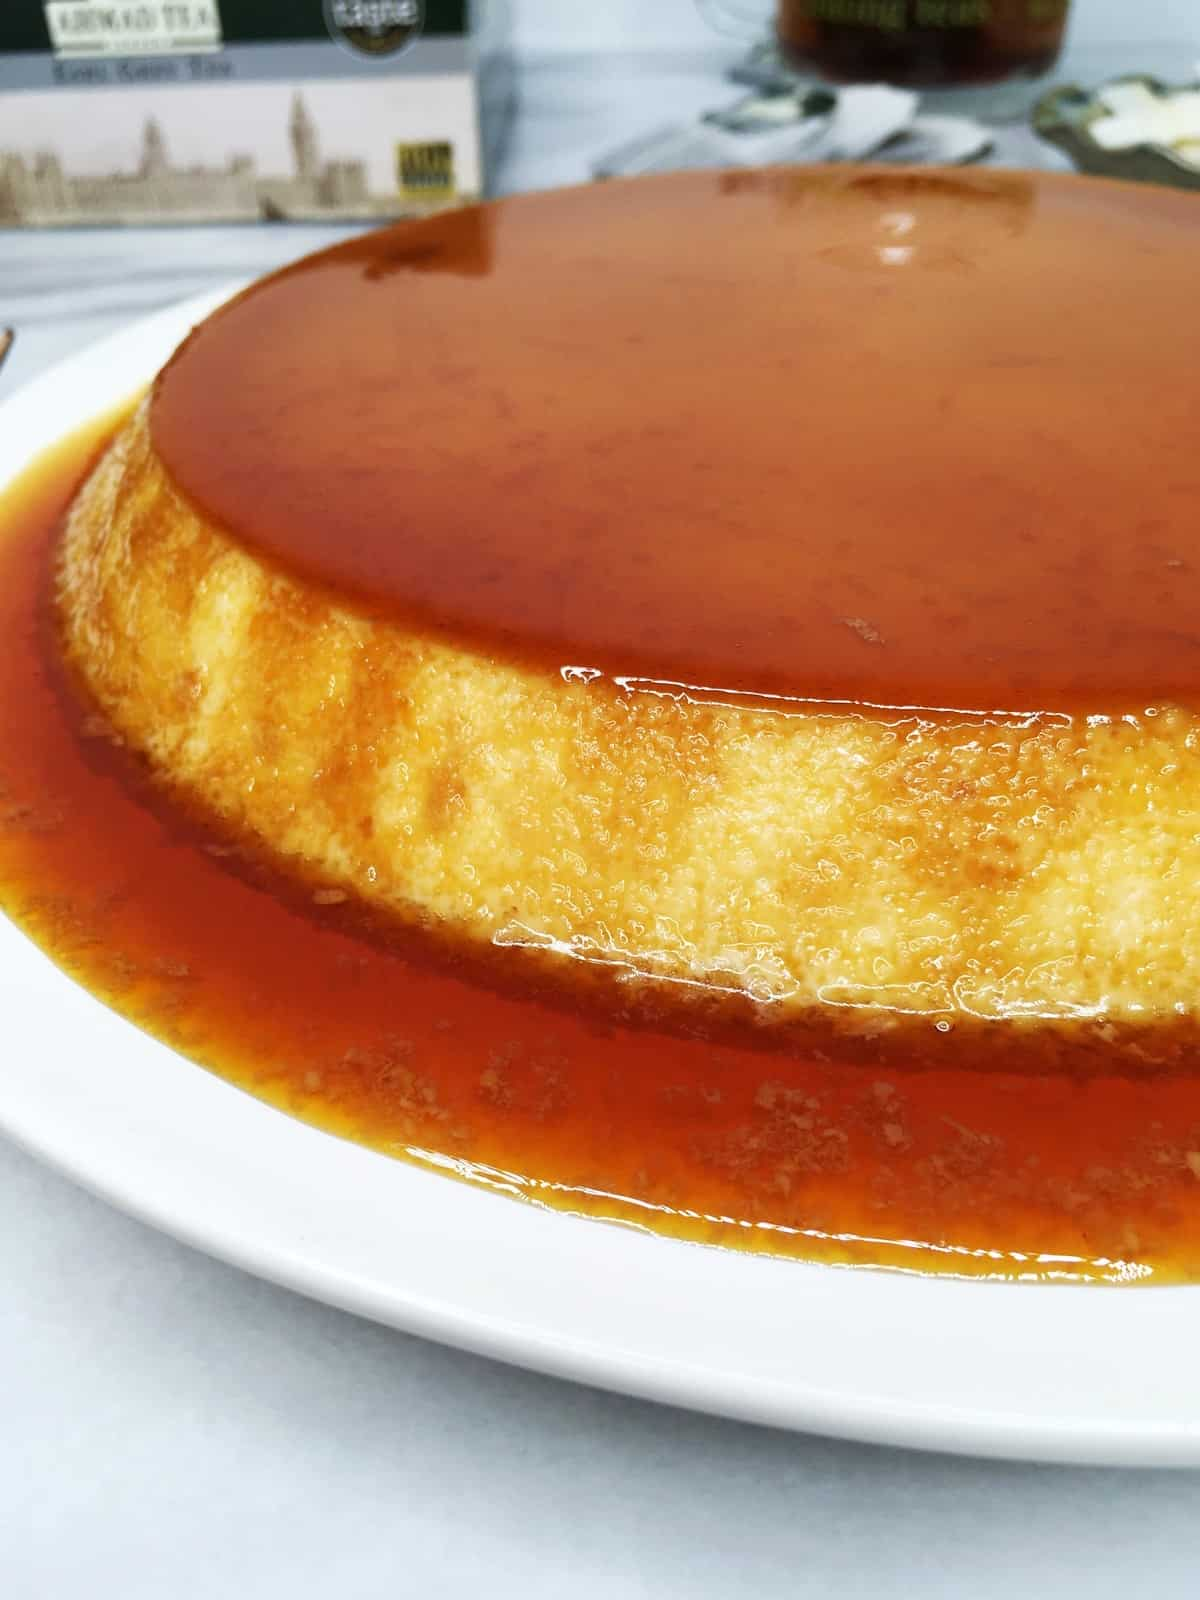 Flan topped with caramel and tea box, tea bags and a cup in the background